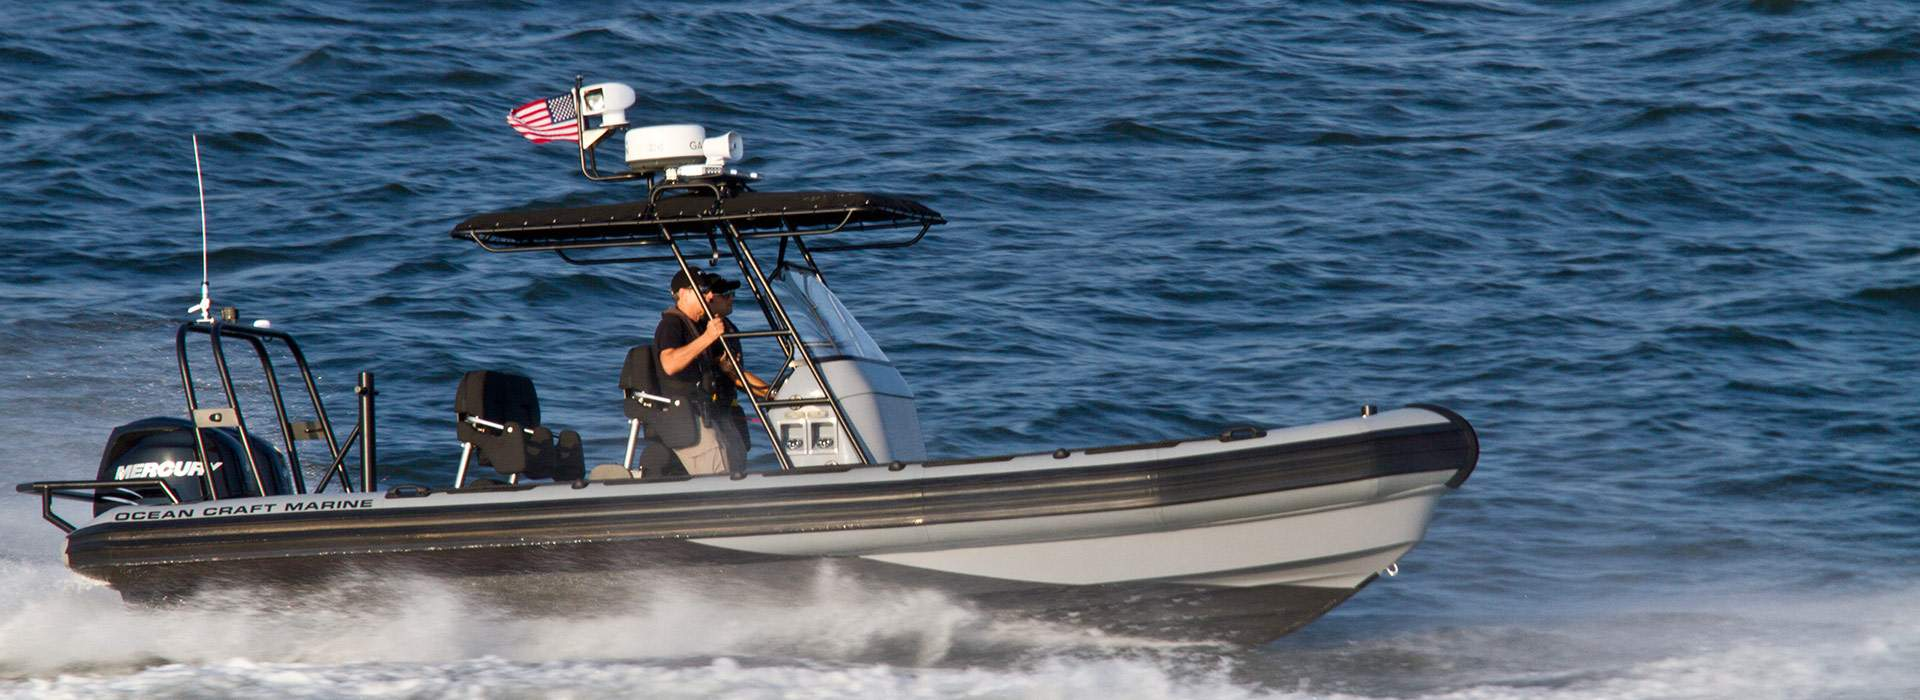 Ocean Craft Marine (OCM) Introduces it's 8.0 Meter Law Enforcement RHIB